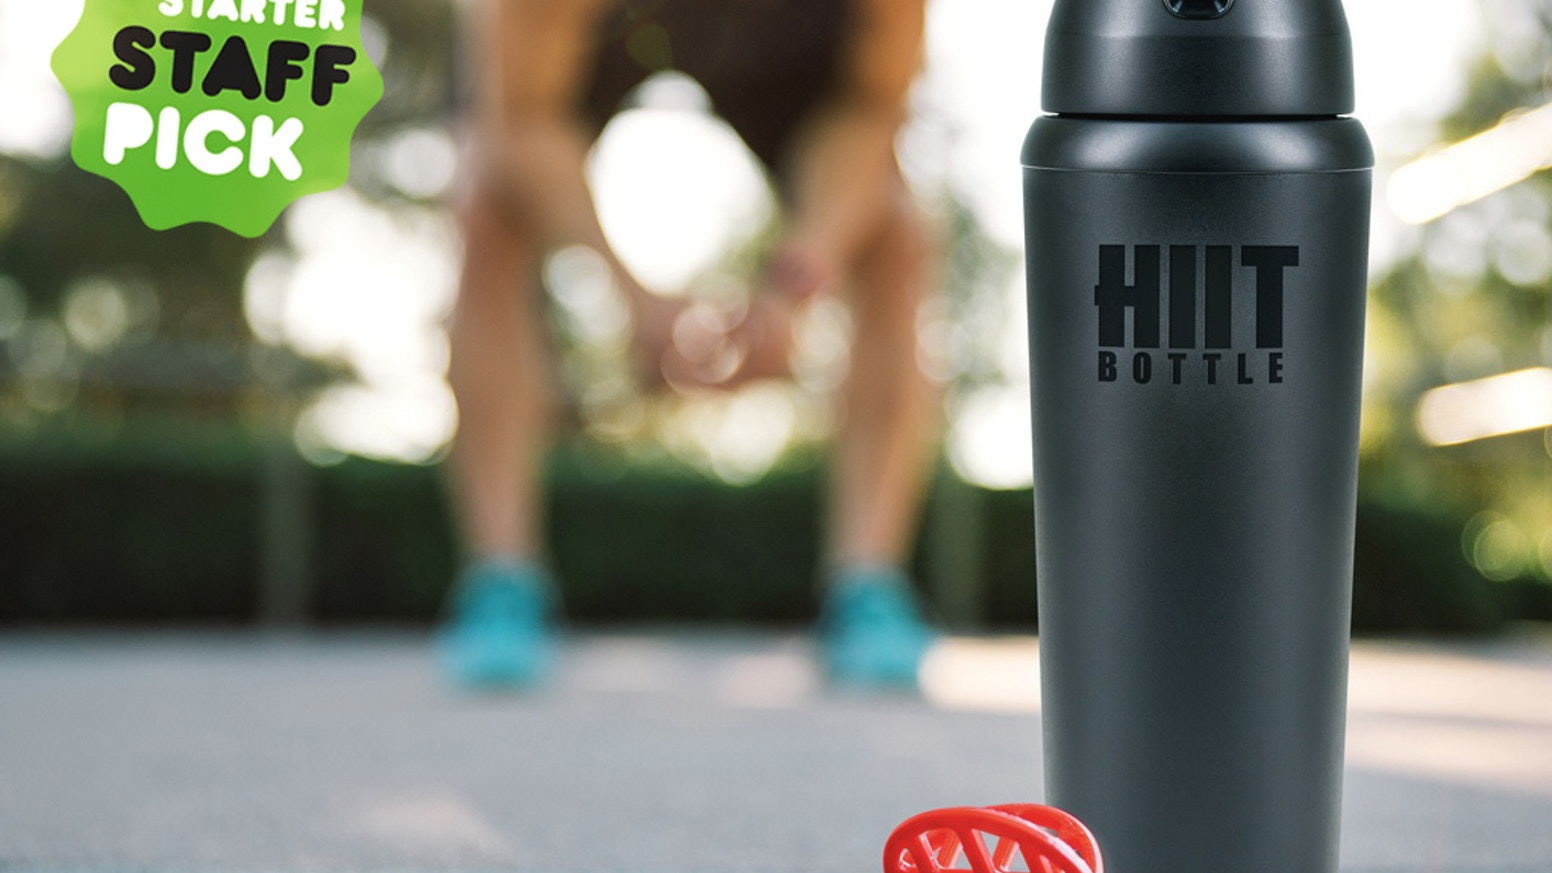 An all-purpose protein bottle engineered to be a permanent solution for conventional, unreliable, plastic protein shakers.